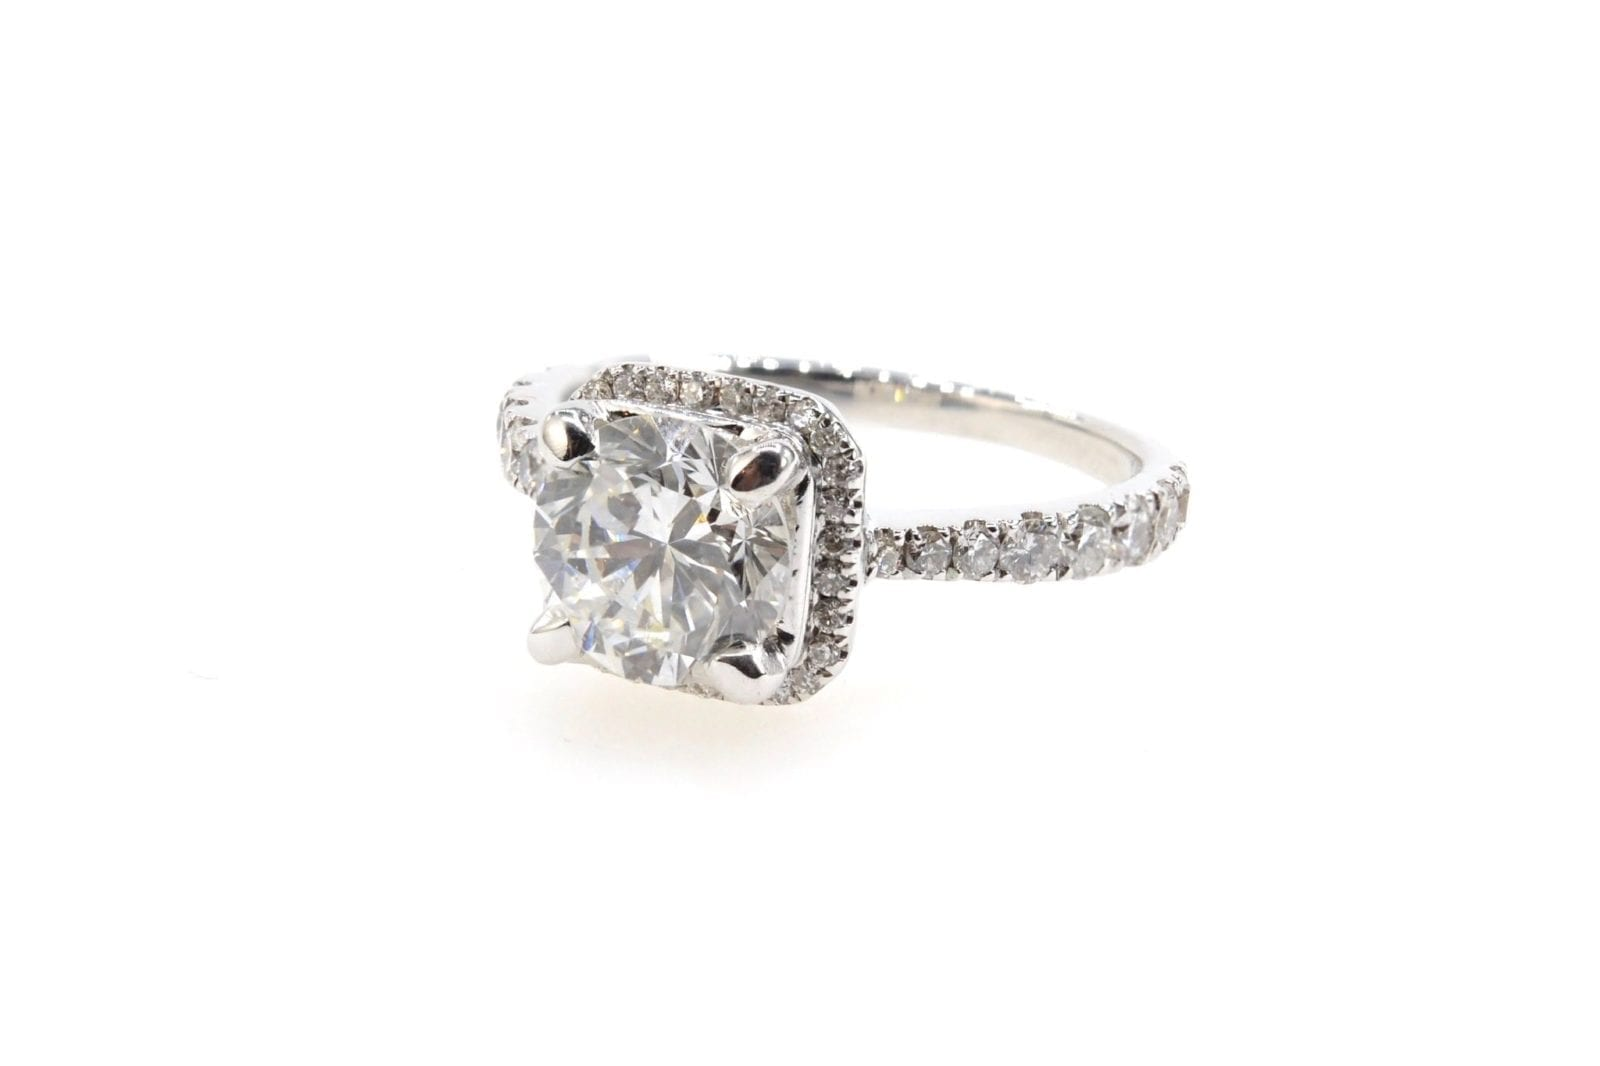 Bague solitaire diamant entourage en or blanc 18k